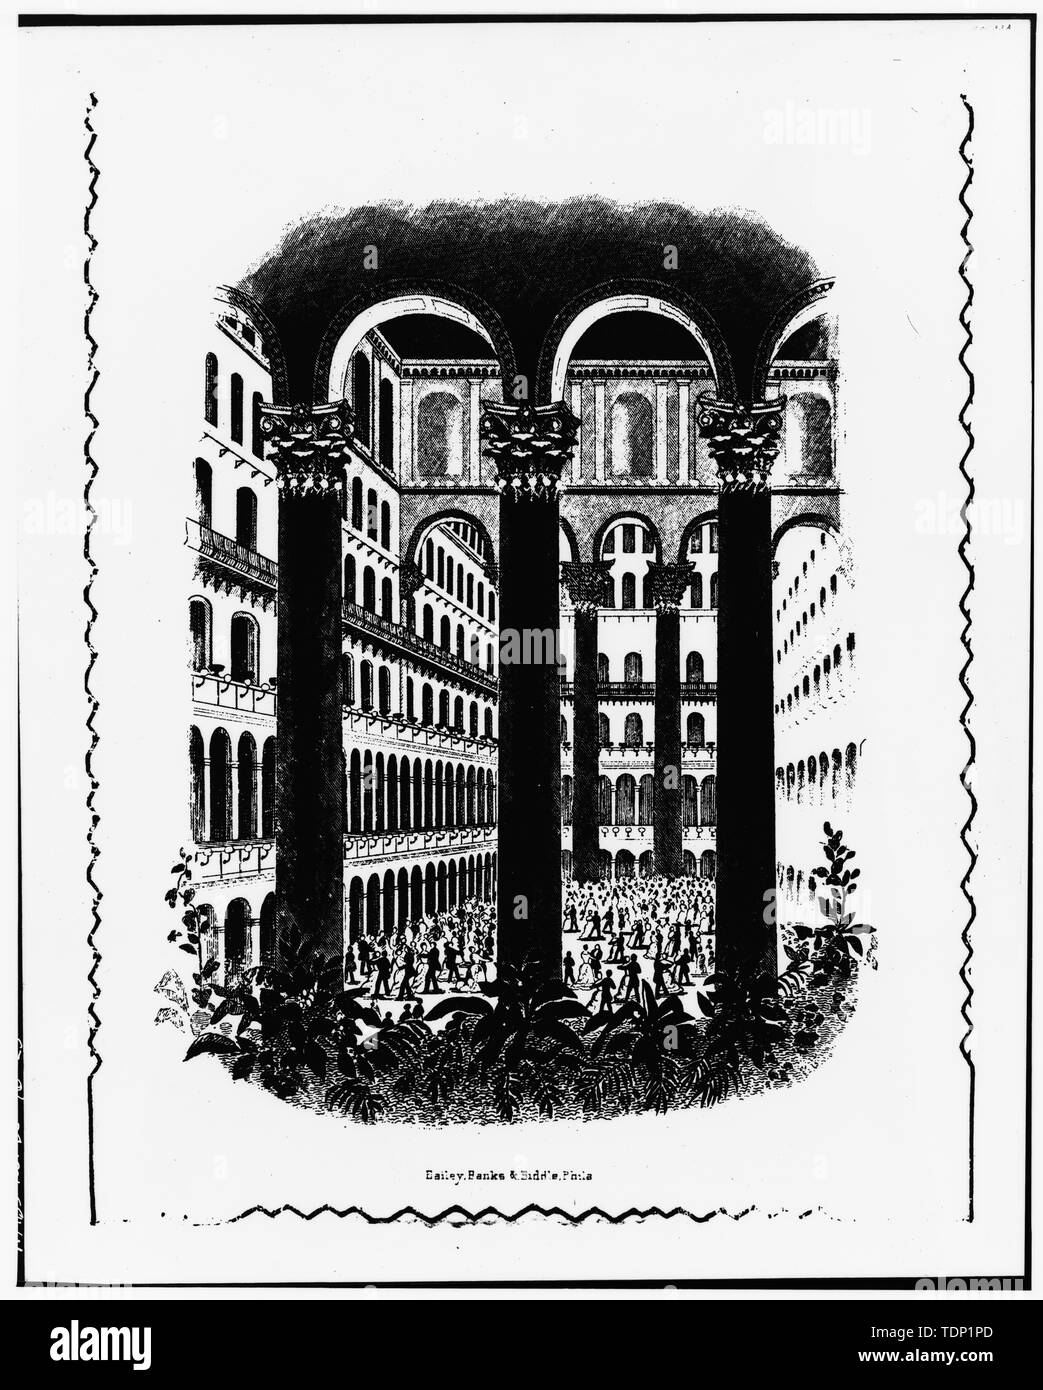 Photocopy of engraving (inscribed with 'Bailey, Banks, and Biddle, Phila.', n.d.) VIEW OF INAUGURAL(?) BALL IN CENTRAL COURT - Pension Building, 440 G Street Northwest, Washington, District of Columbia, DC - Stock Image